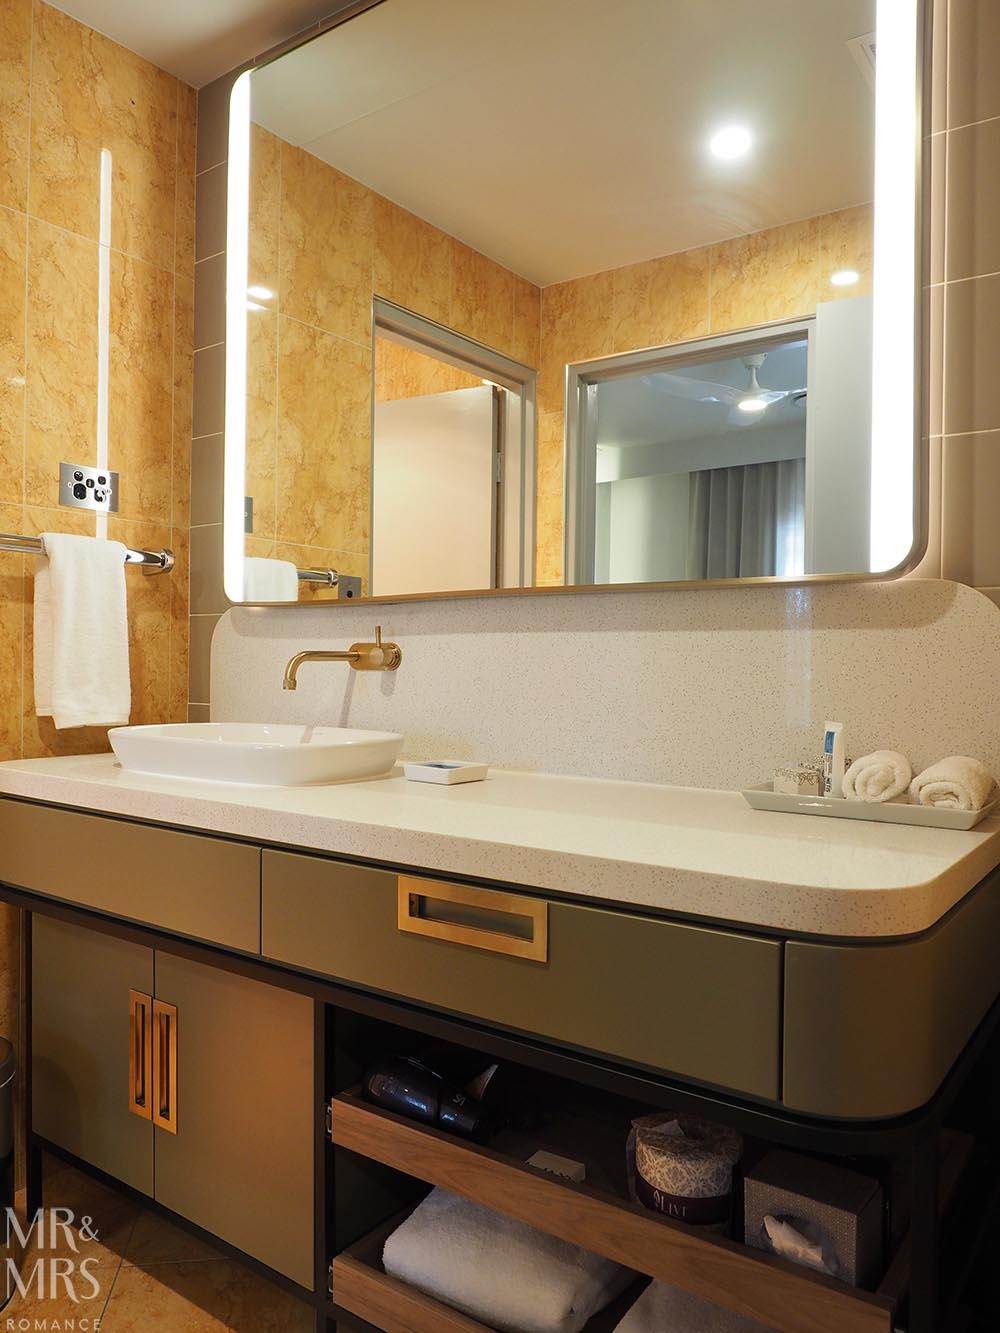 Where to stay in Tamworth NSW - Powerhouse Hotel Tamworth by Rydges - bathroom